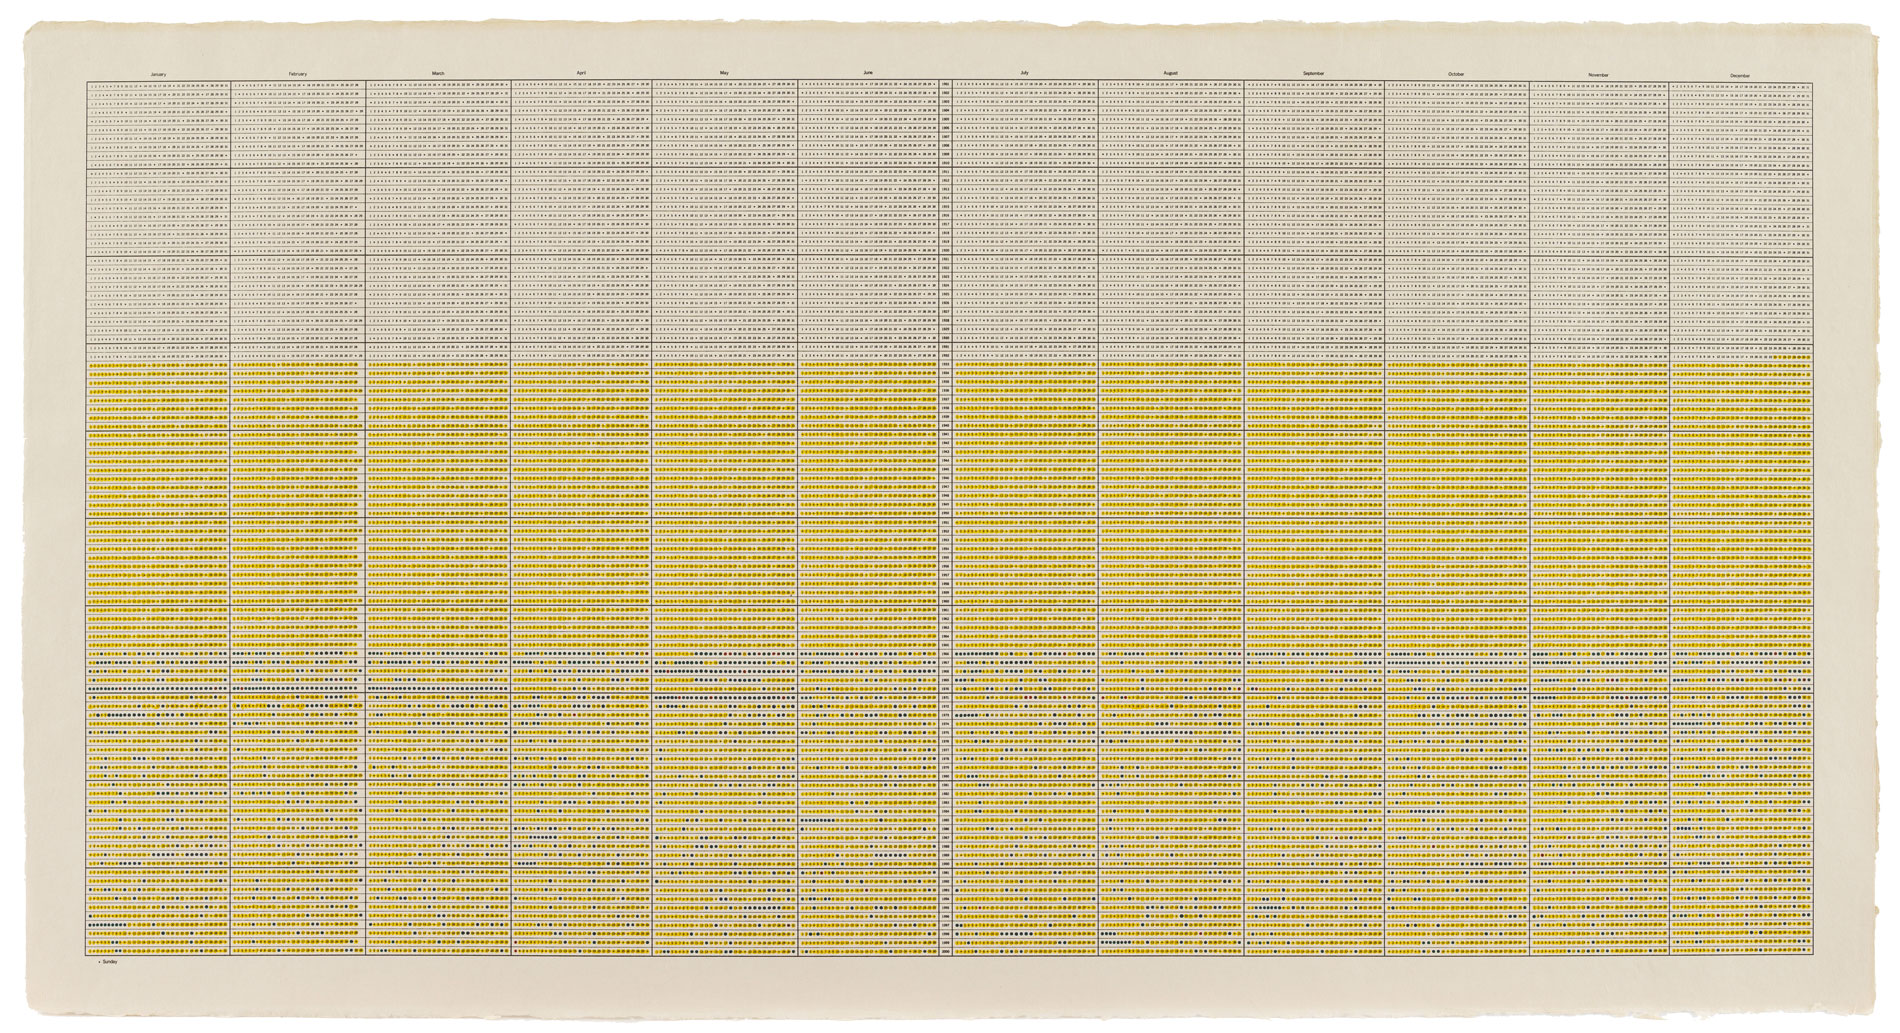 "On Kawara, One Hundred Years Calender – 20th Century ""24,845 days"", 2000, 68,6 × 129,5 cm; MMK Museum für Moderne Kunst Frankfurt am Main"